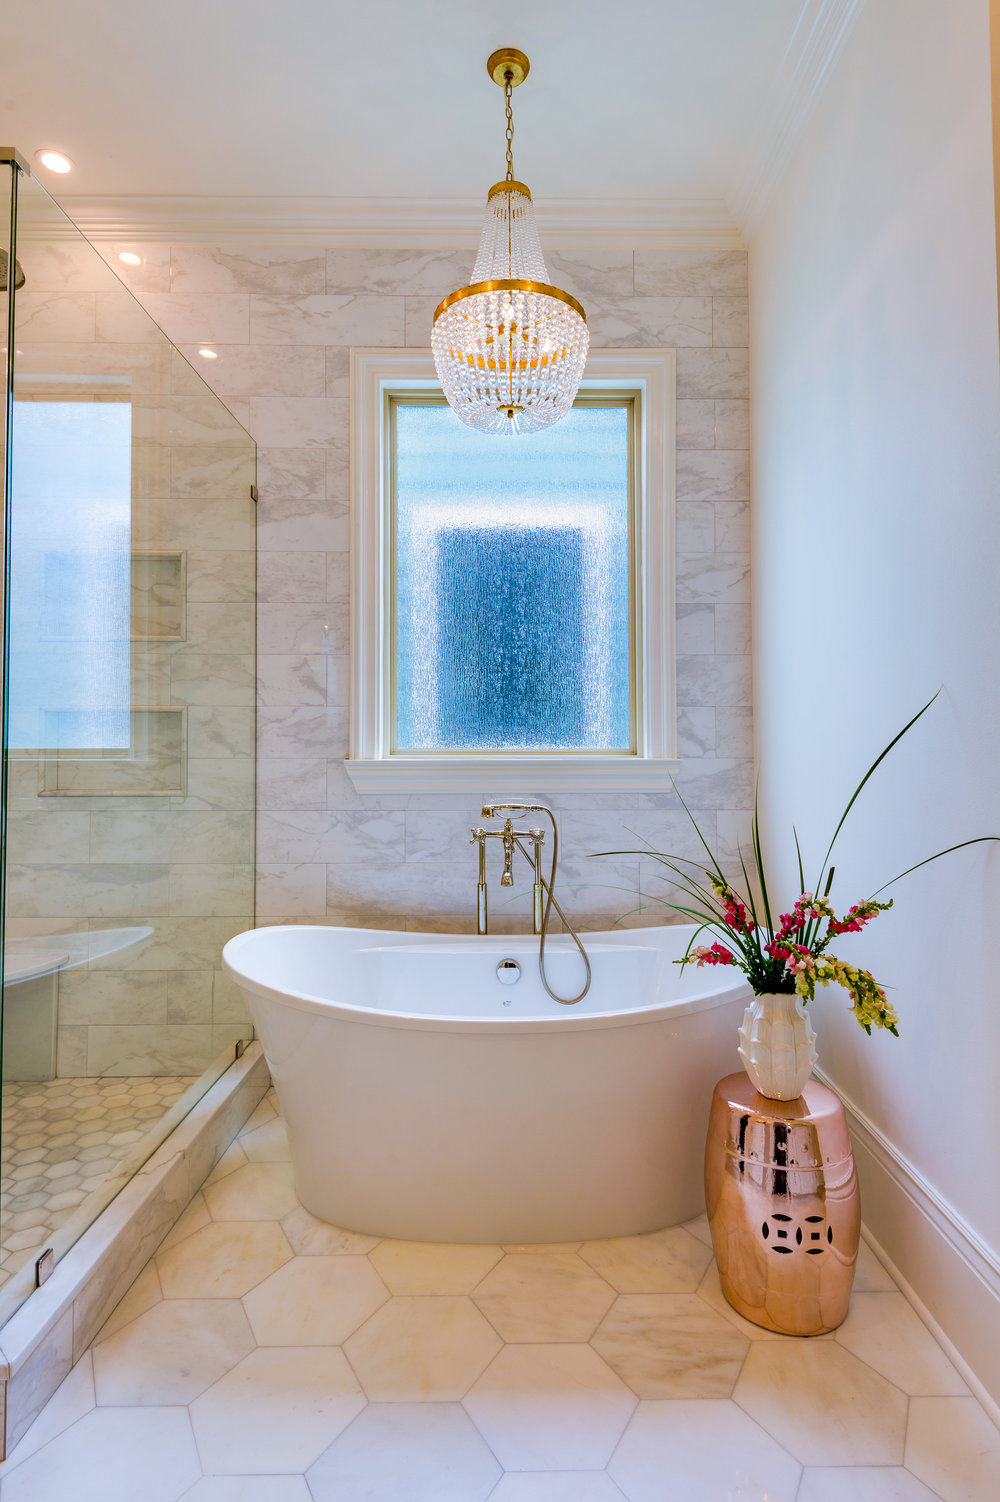 KHB Interiors master bathroom metairie interior decorator designer new orleans new construction paint colors new orleans lakeview .jpg